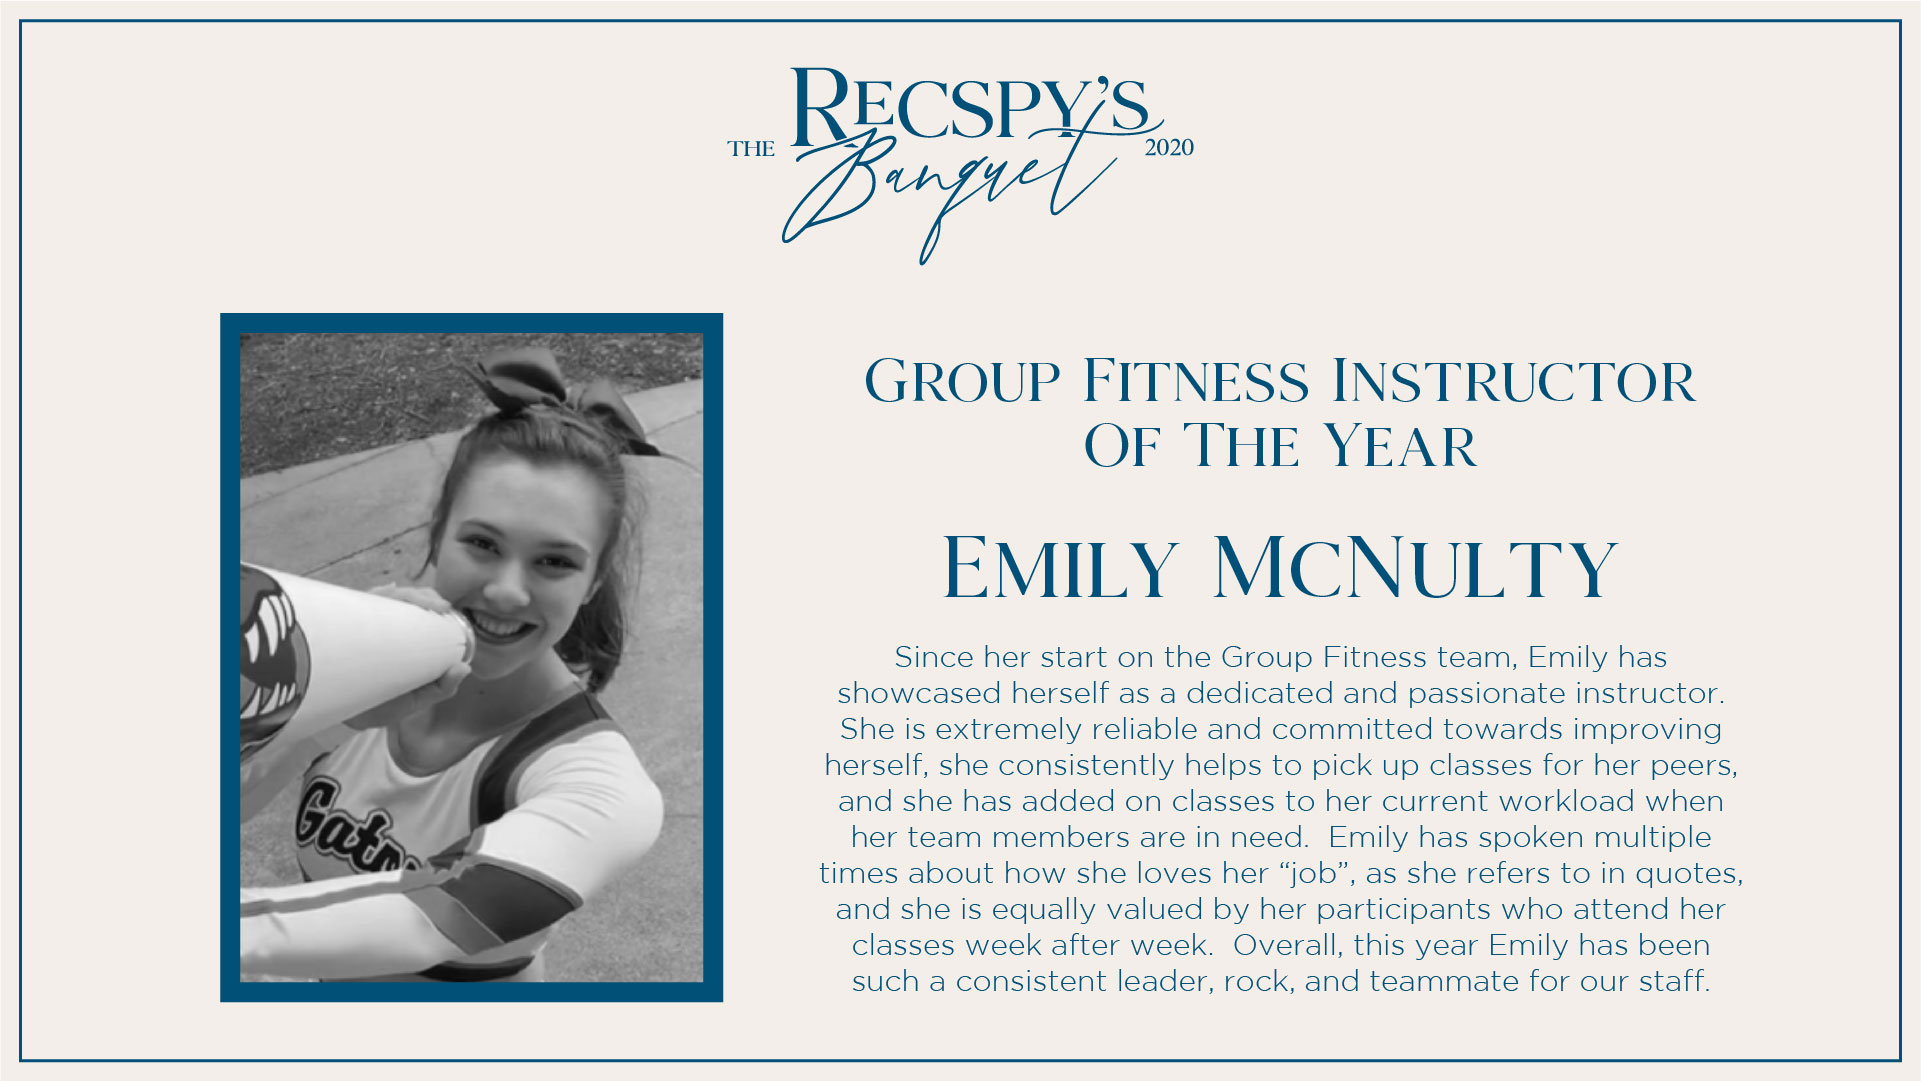 Emily McNulty: Group Fitness Instructor of the Year